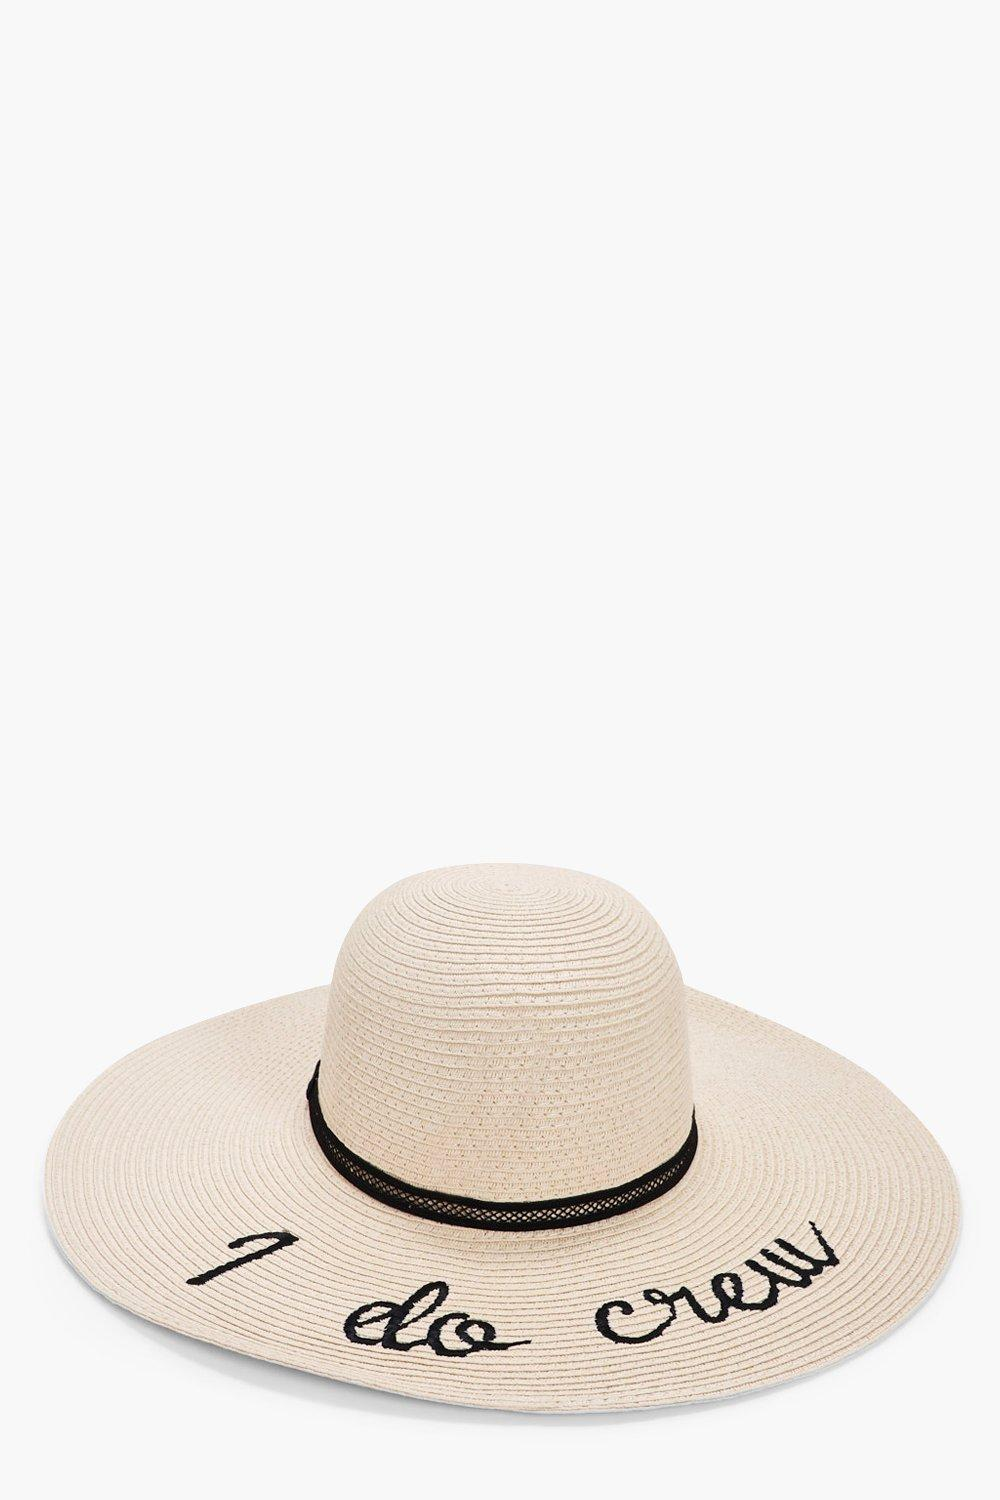 I Do Crew Straw Floppy Hat - cream - Amelia I Do C